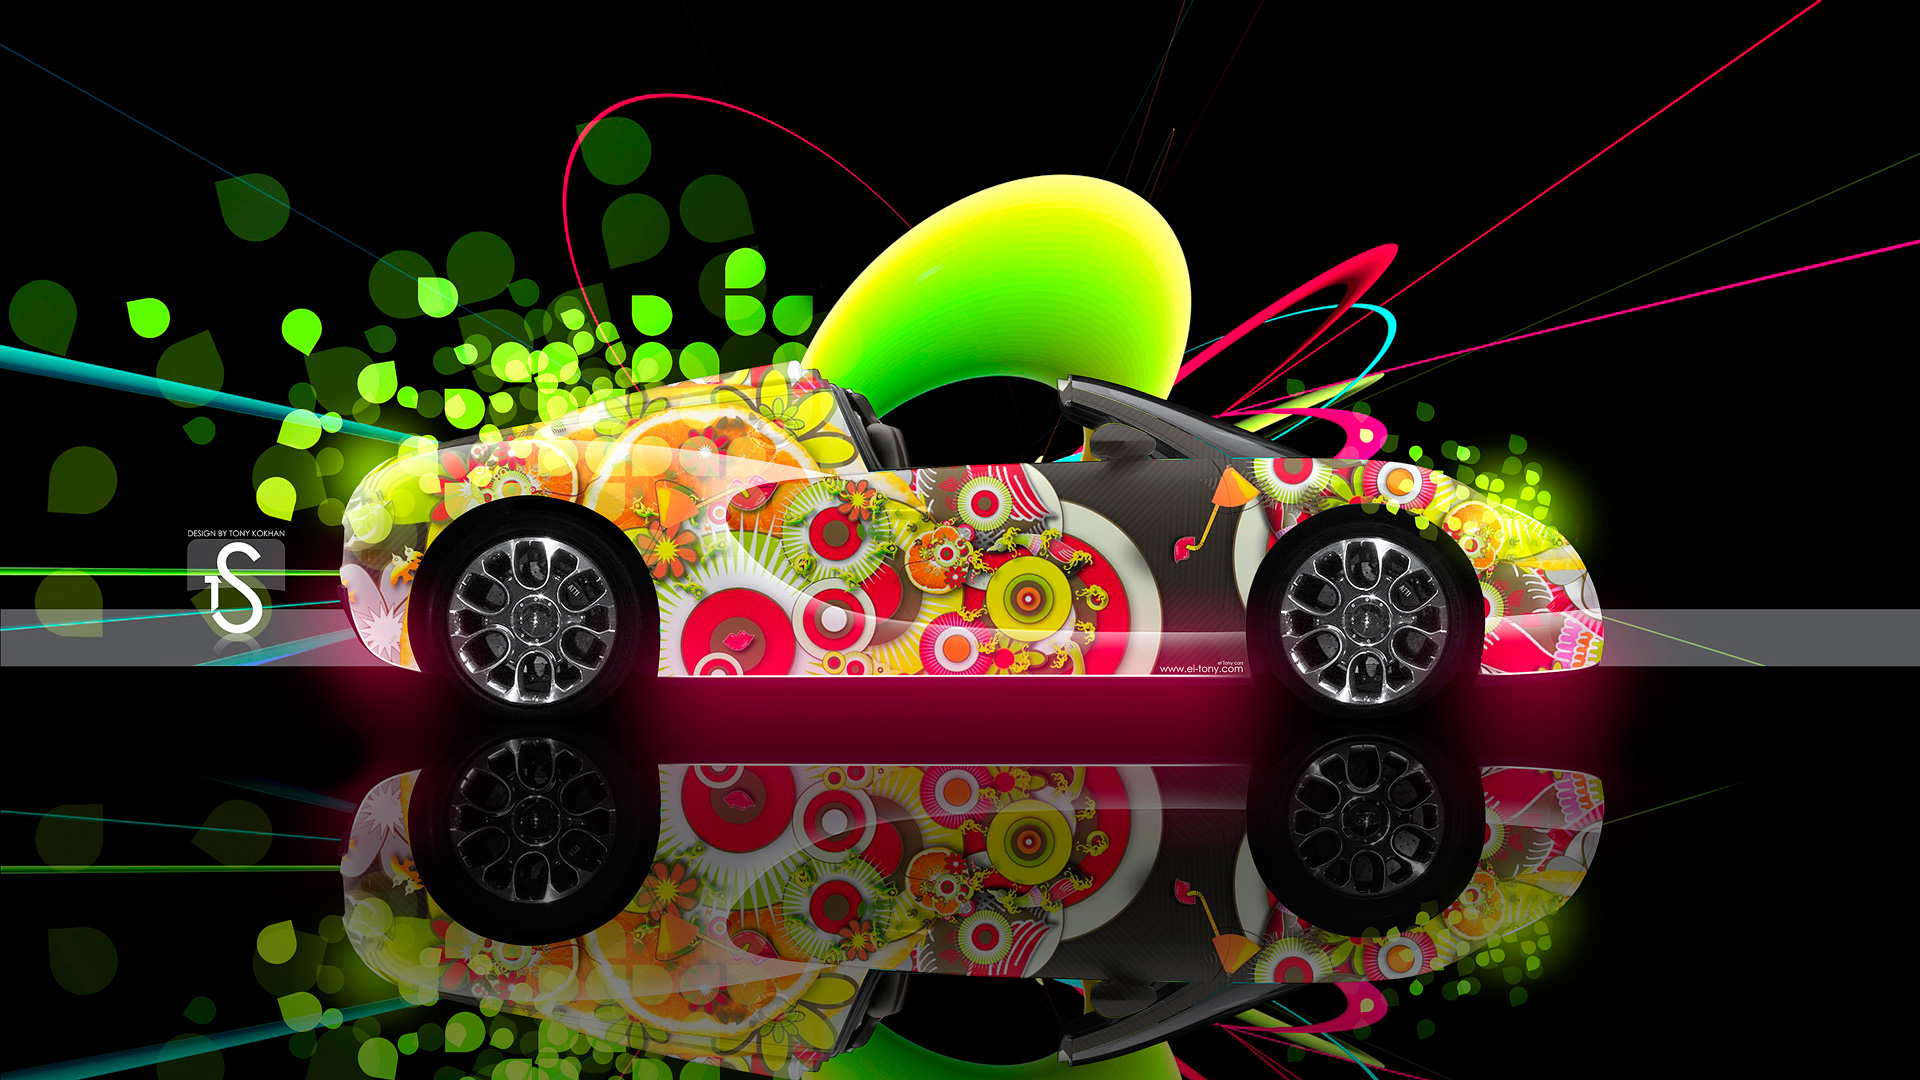 Captivating Bugatti Veyron Super Abstract Car 2013 HD Wallpapers